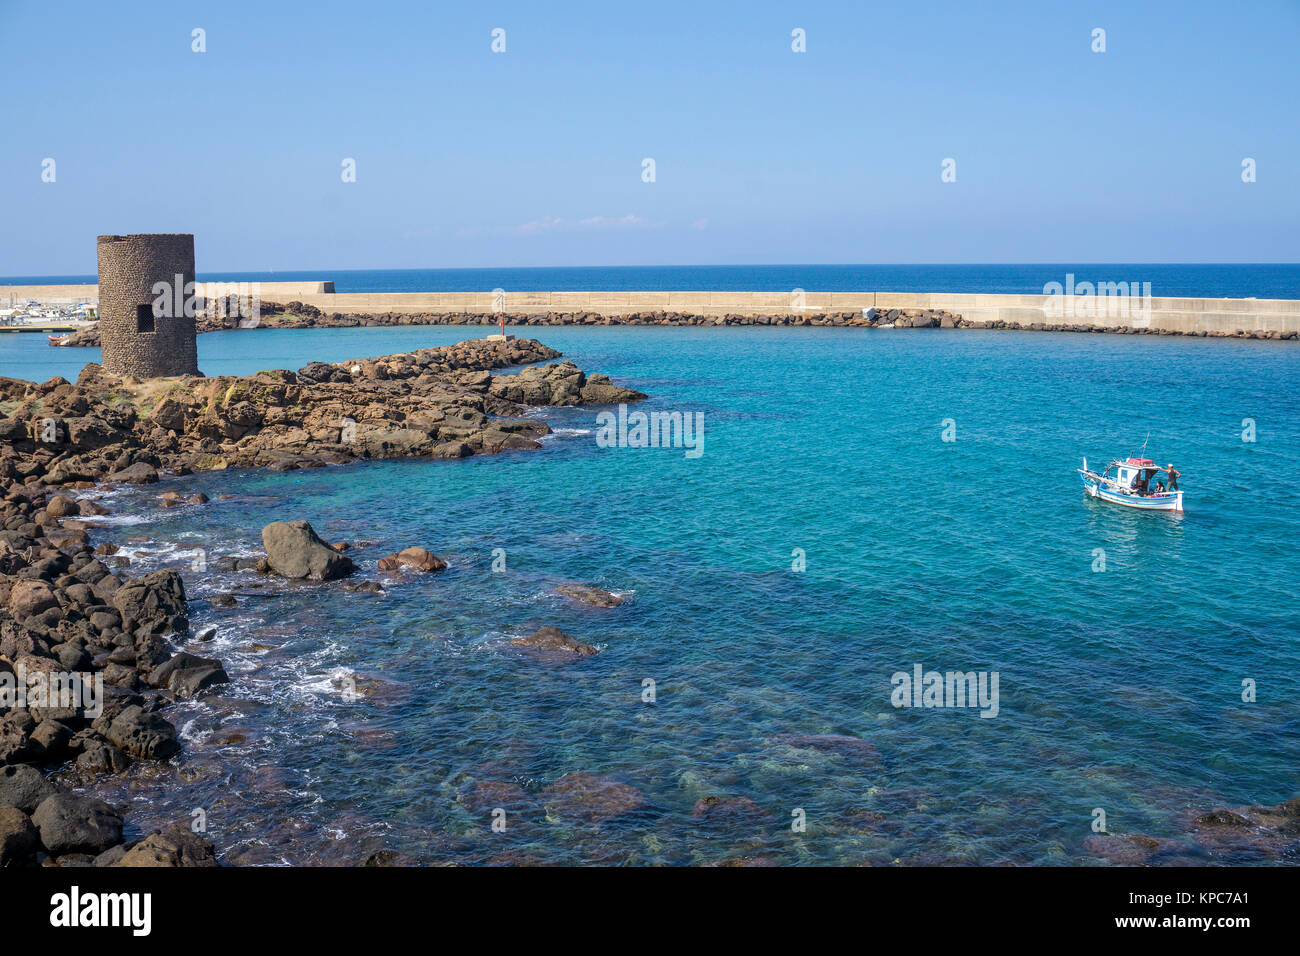 Fishing boat at the harbour entrance of Castelsardo, Sardinia, Italy, Mediterranean sea, Europe - Stock Image